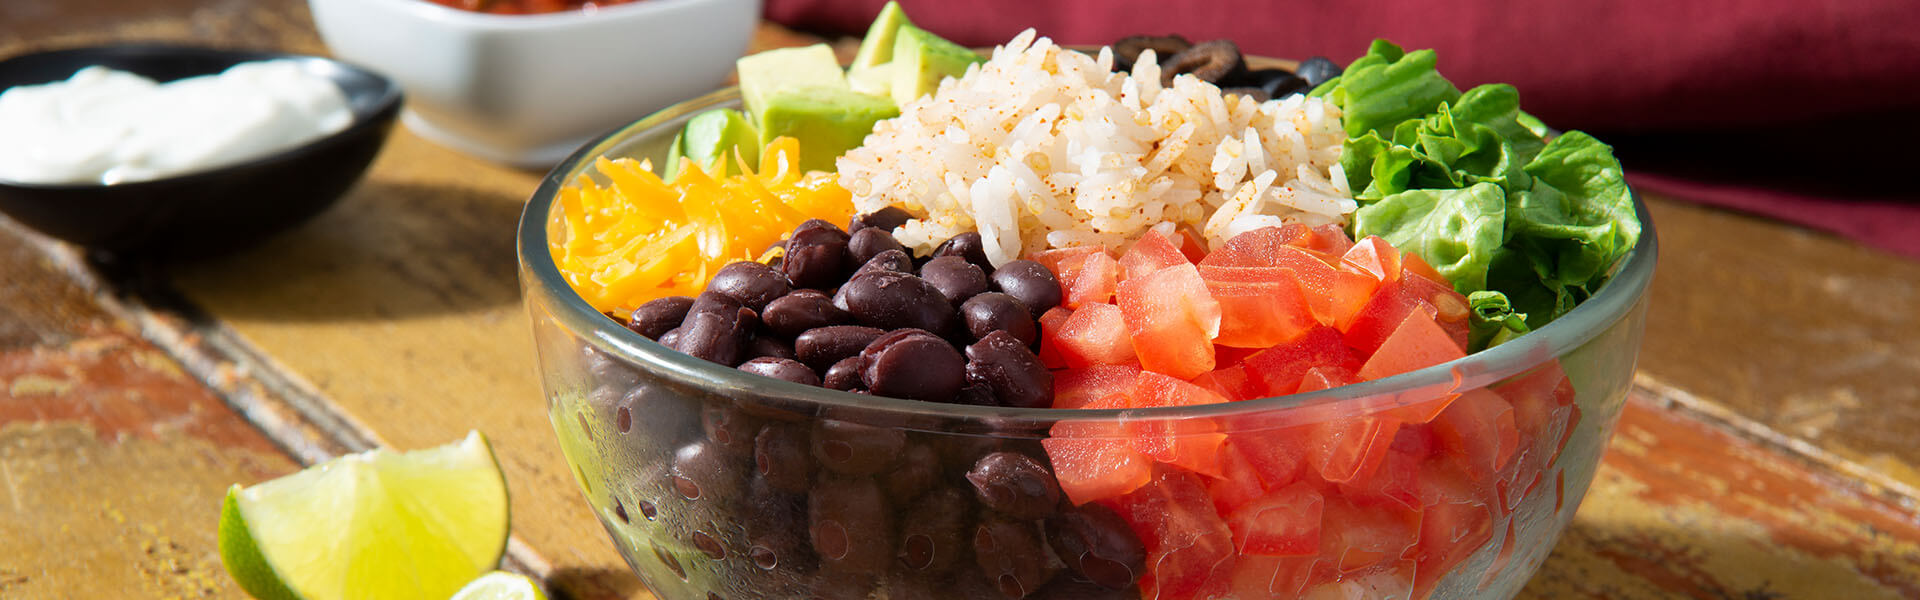 Rice & Beans Taco Bowl with Quinoa